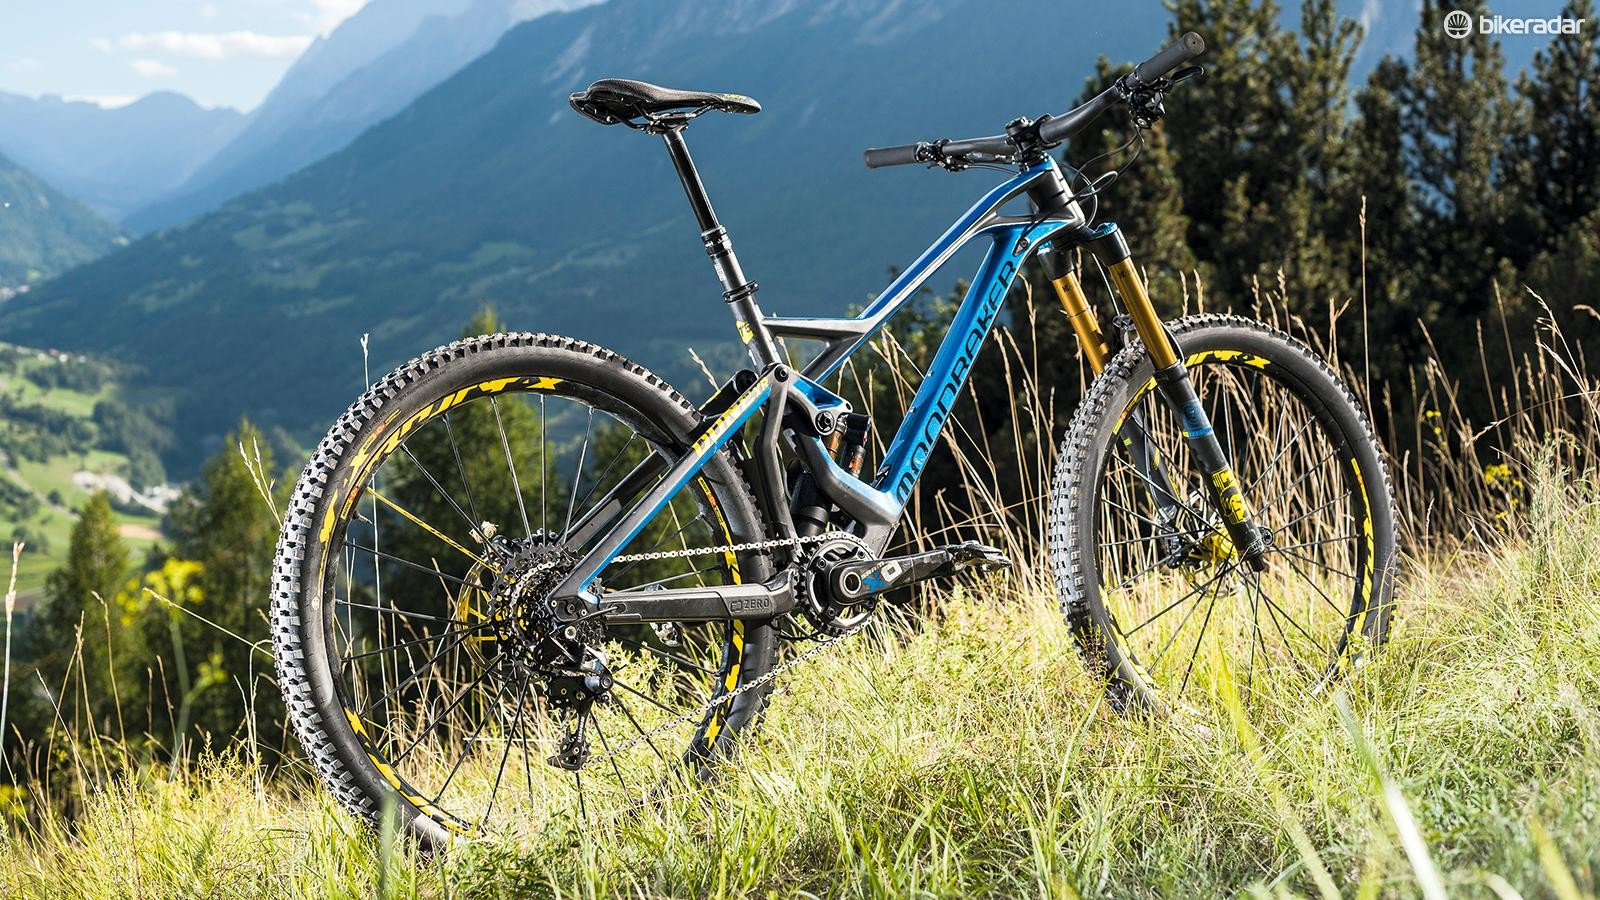 Mondraker's Dune Carbon XR is a blistering ride